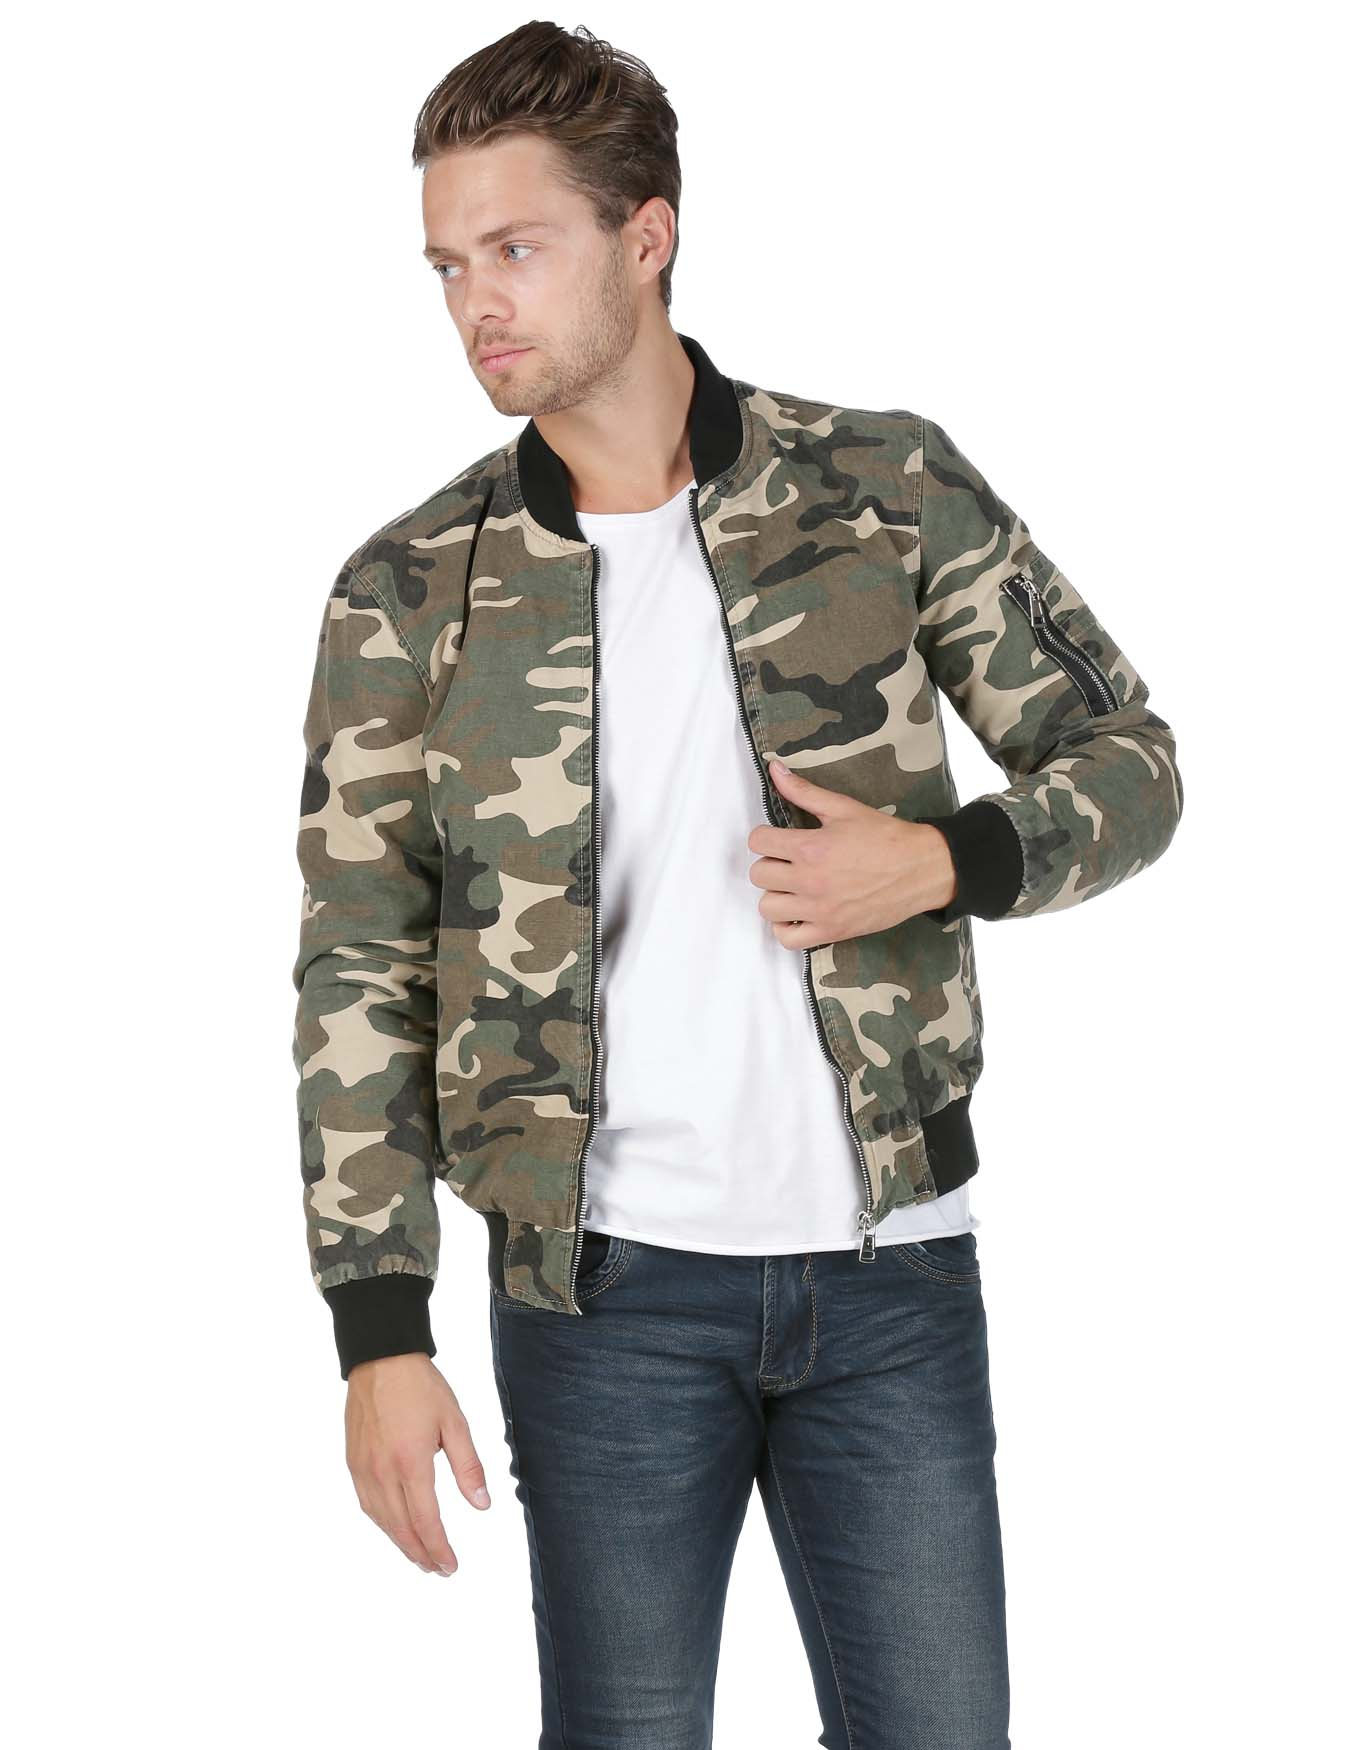 Ανδρικό Jacket Camo Not Denim - VERON - TG-2675-1